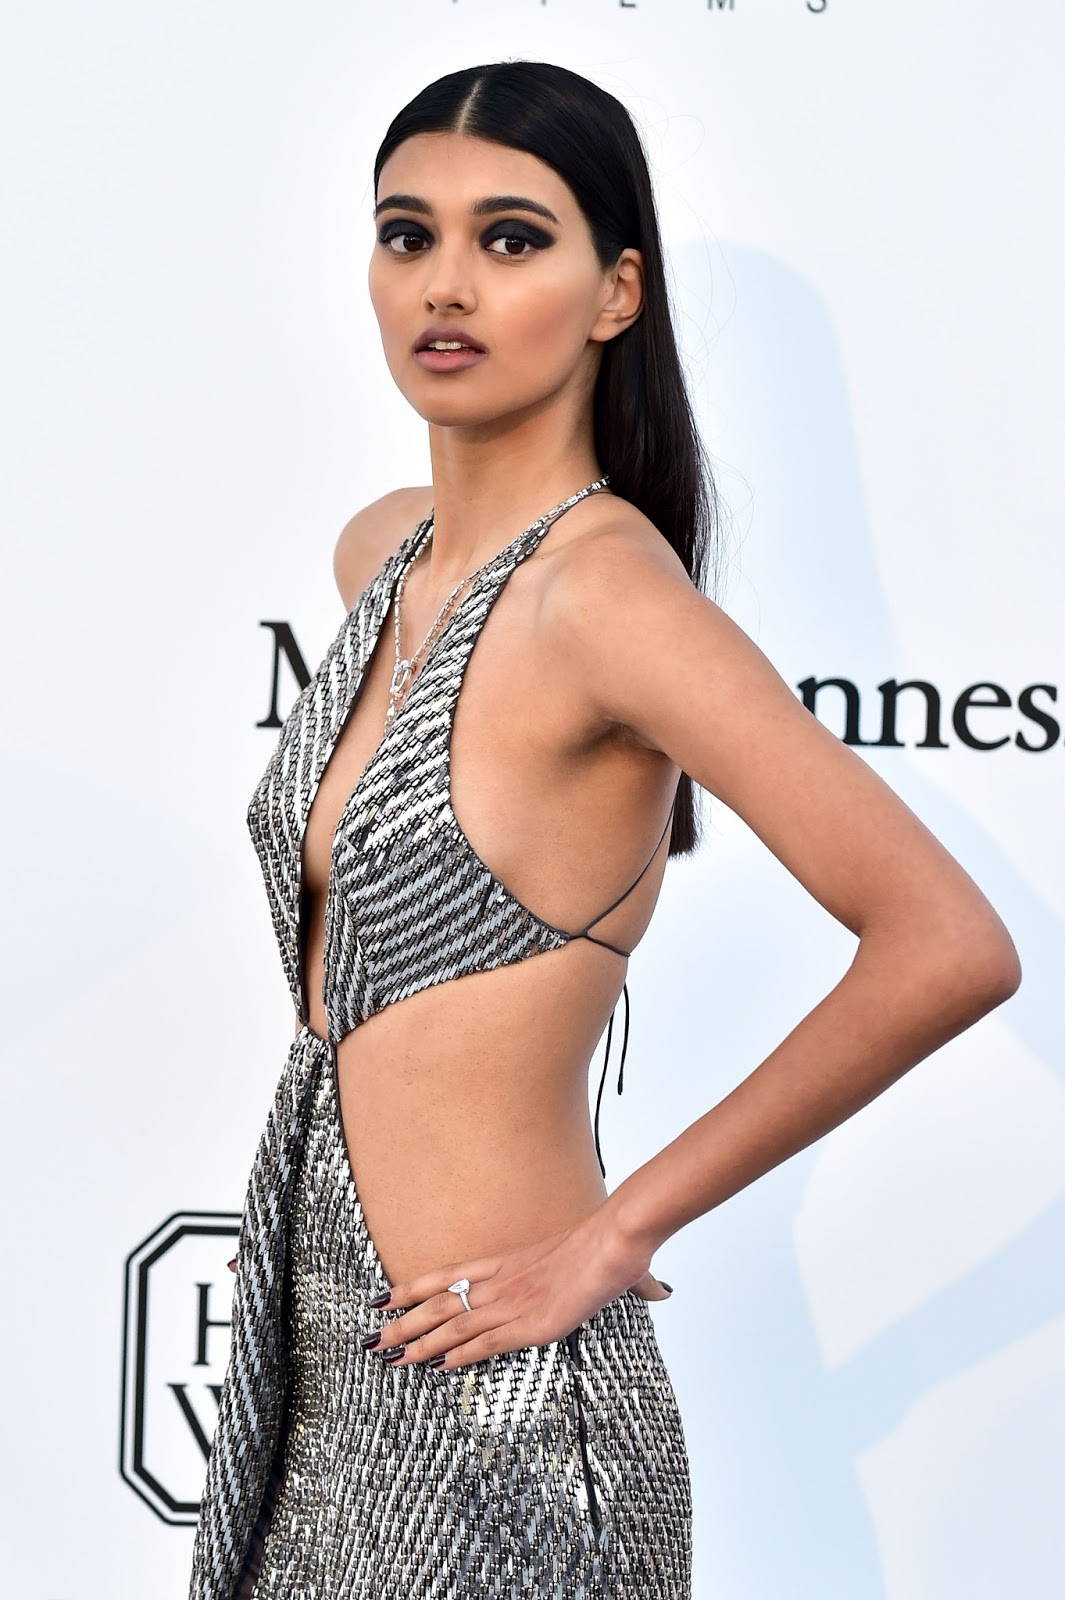 Hot Neelam Gill nudes (62 foto and video), Pussy, Paparazzi, Boobs, see through 2006